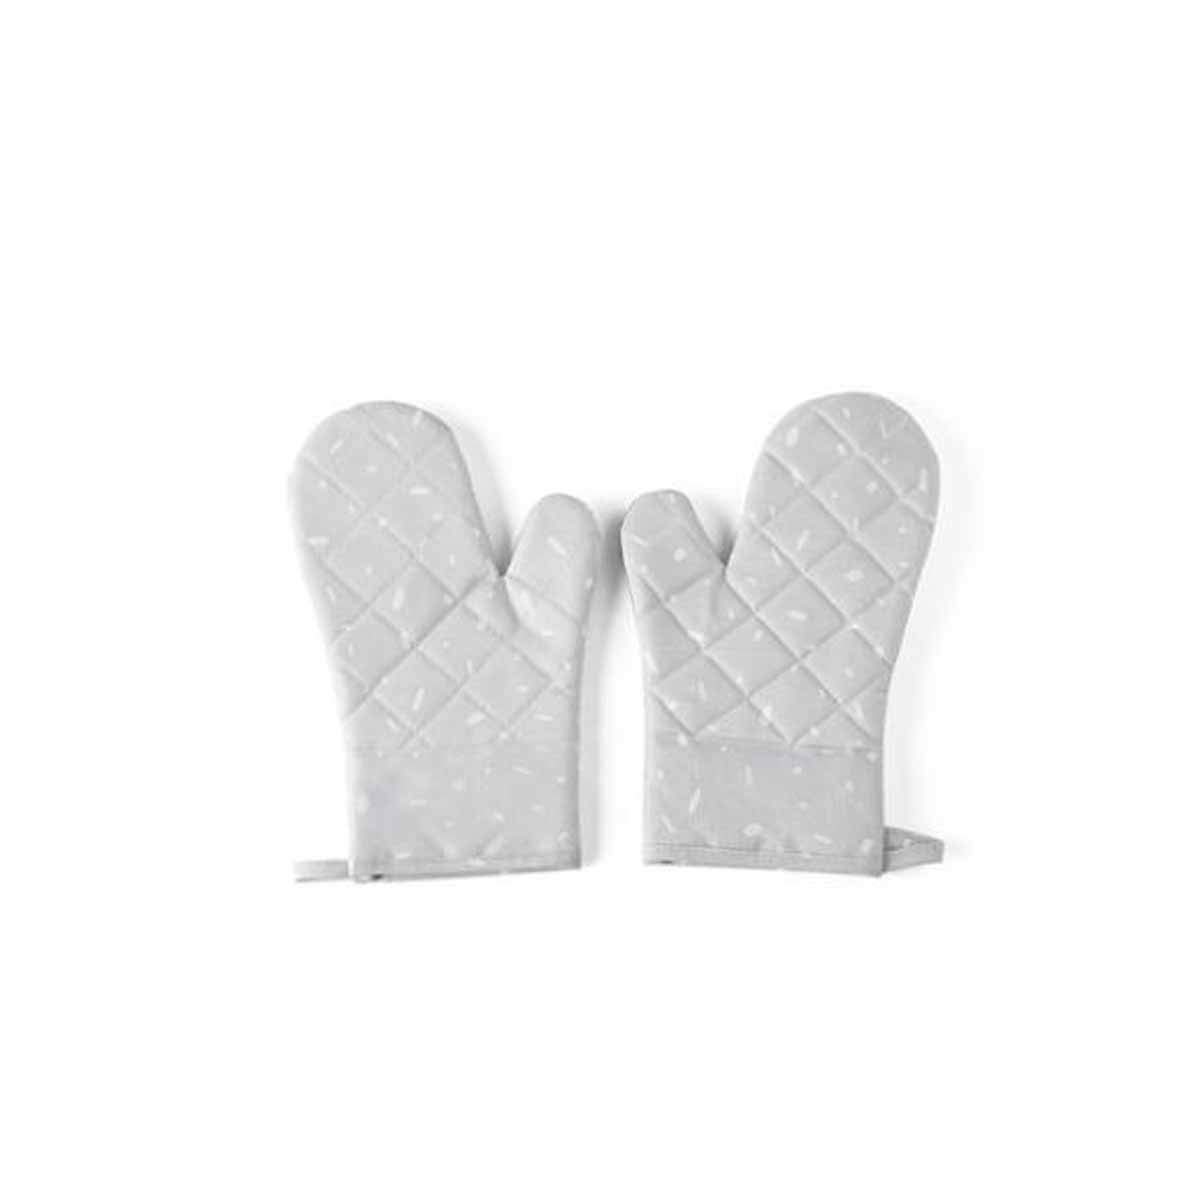 Insulation Anti-scalding Gloves, Kitchen Microwave Oven Thick Silicone High Temperature Resistant, Cooking Baking Oven (Two) (Color : Gray)